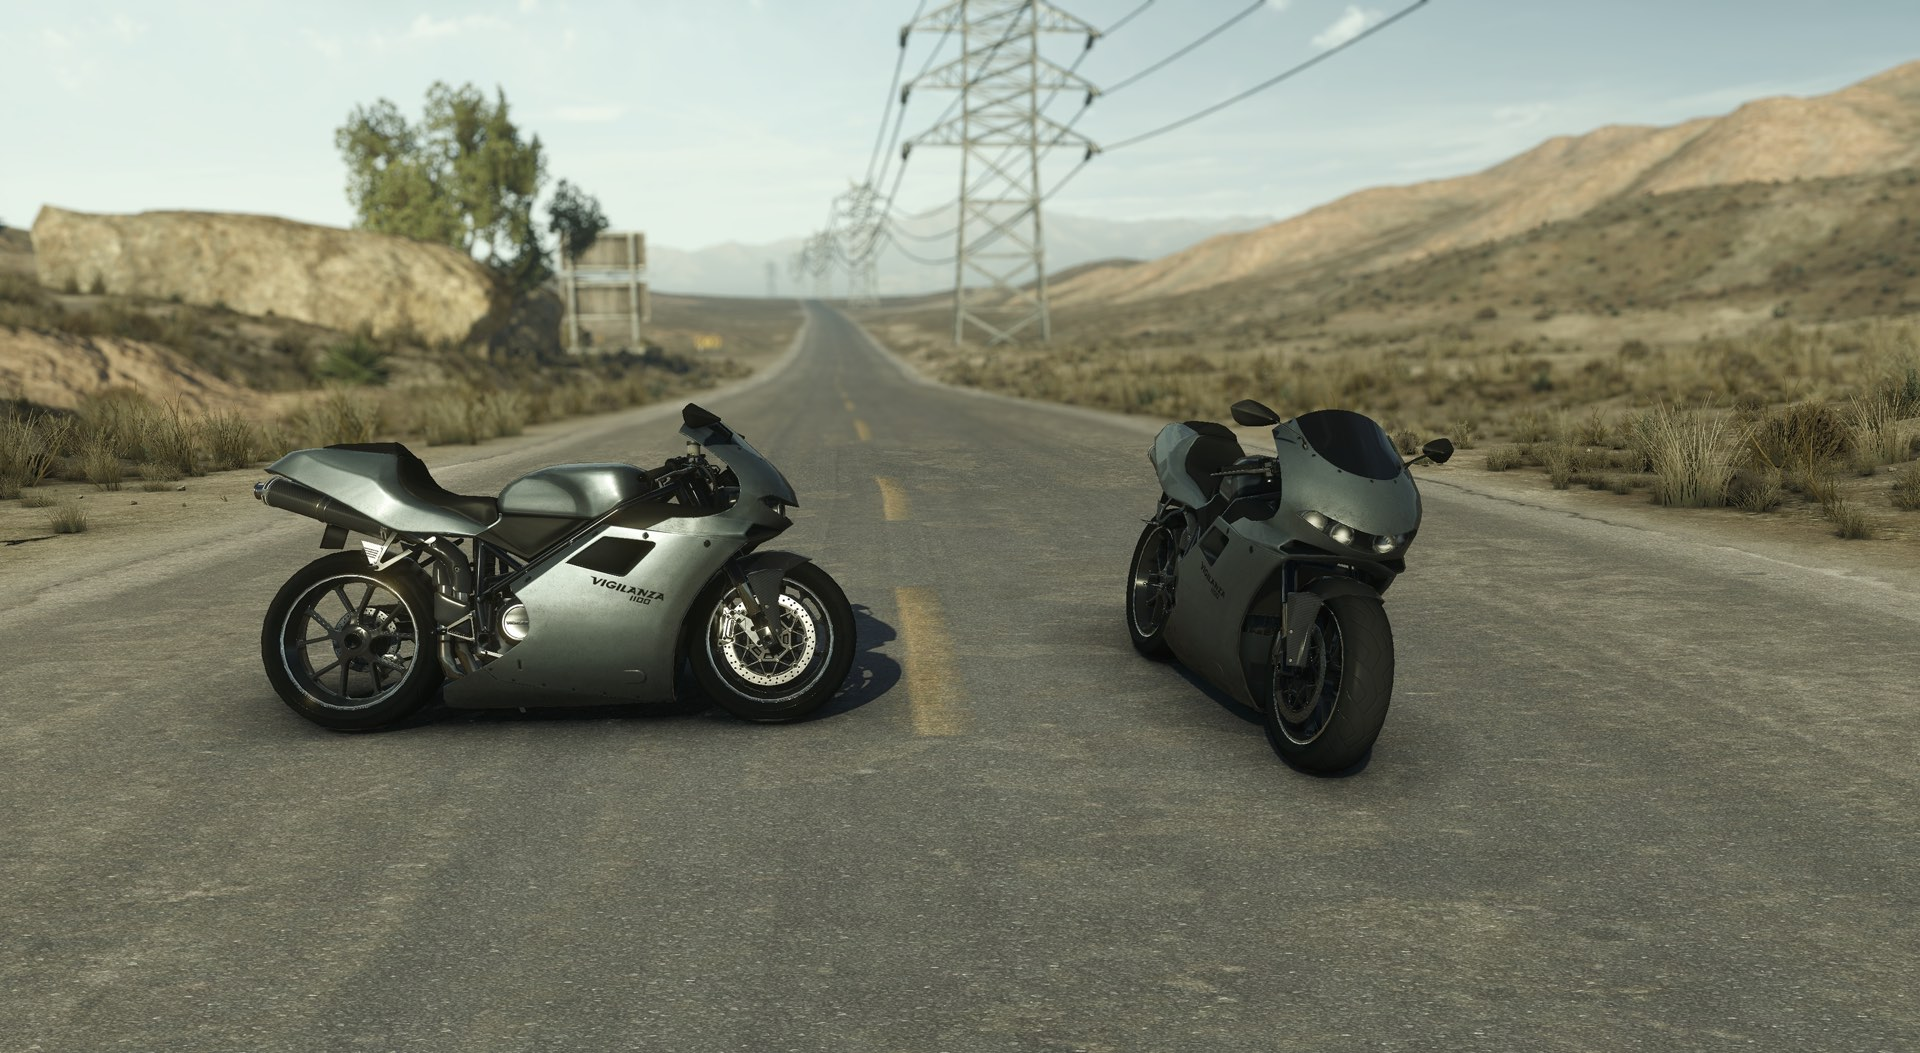 Battlefield hardline vehicle list